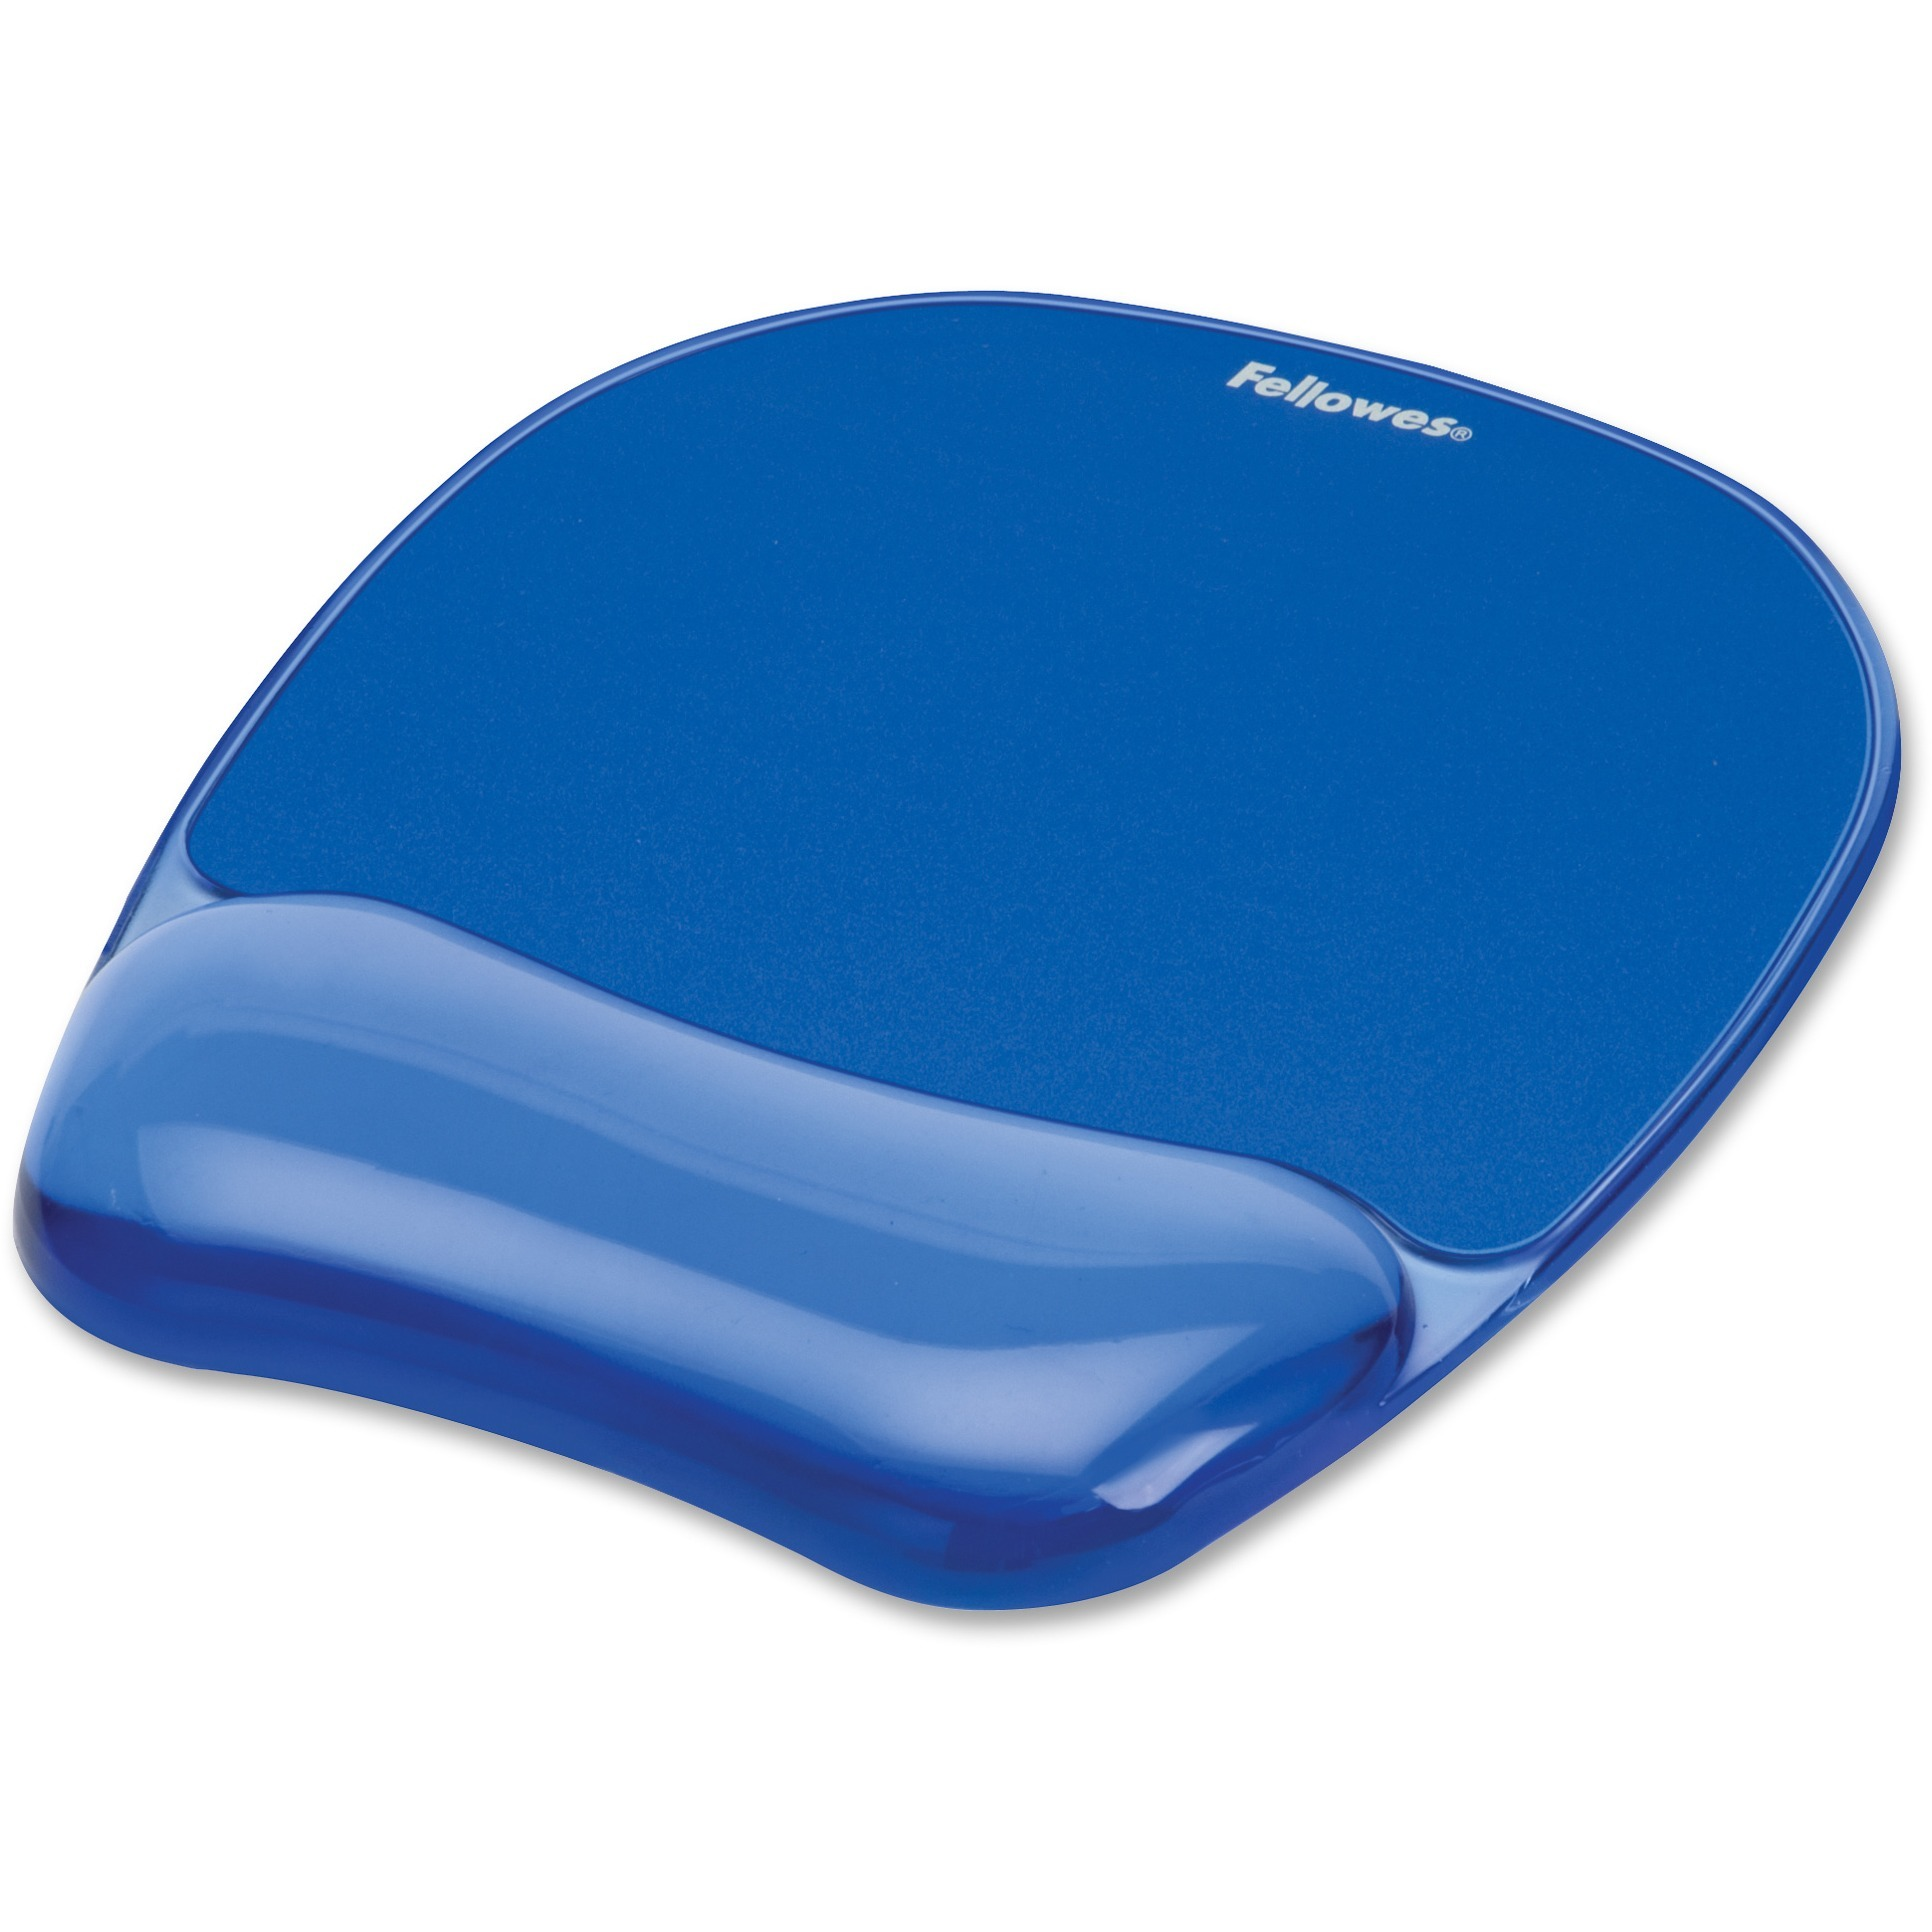 Fellowes, FEL91141, Gel Mousepad/Wrist Rest - Crystals, Blue, 1, Blue